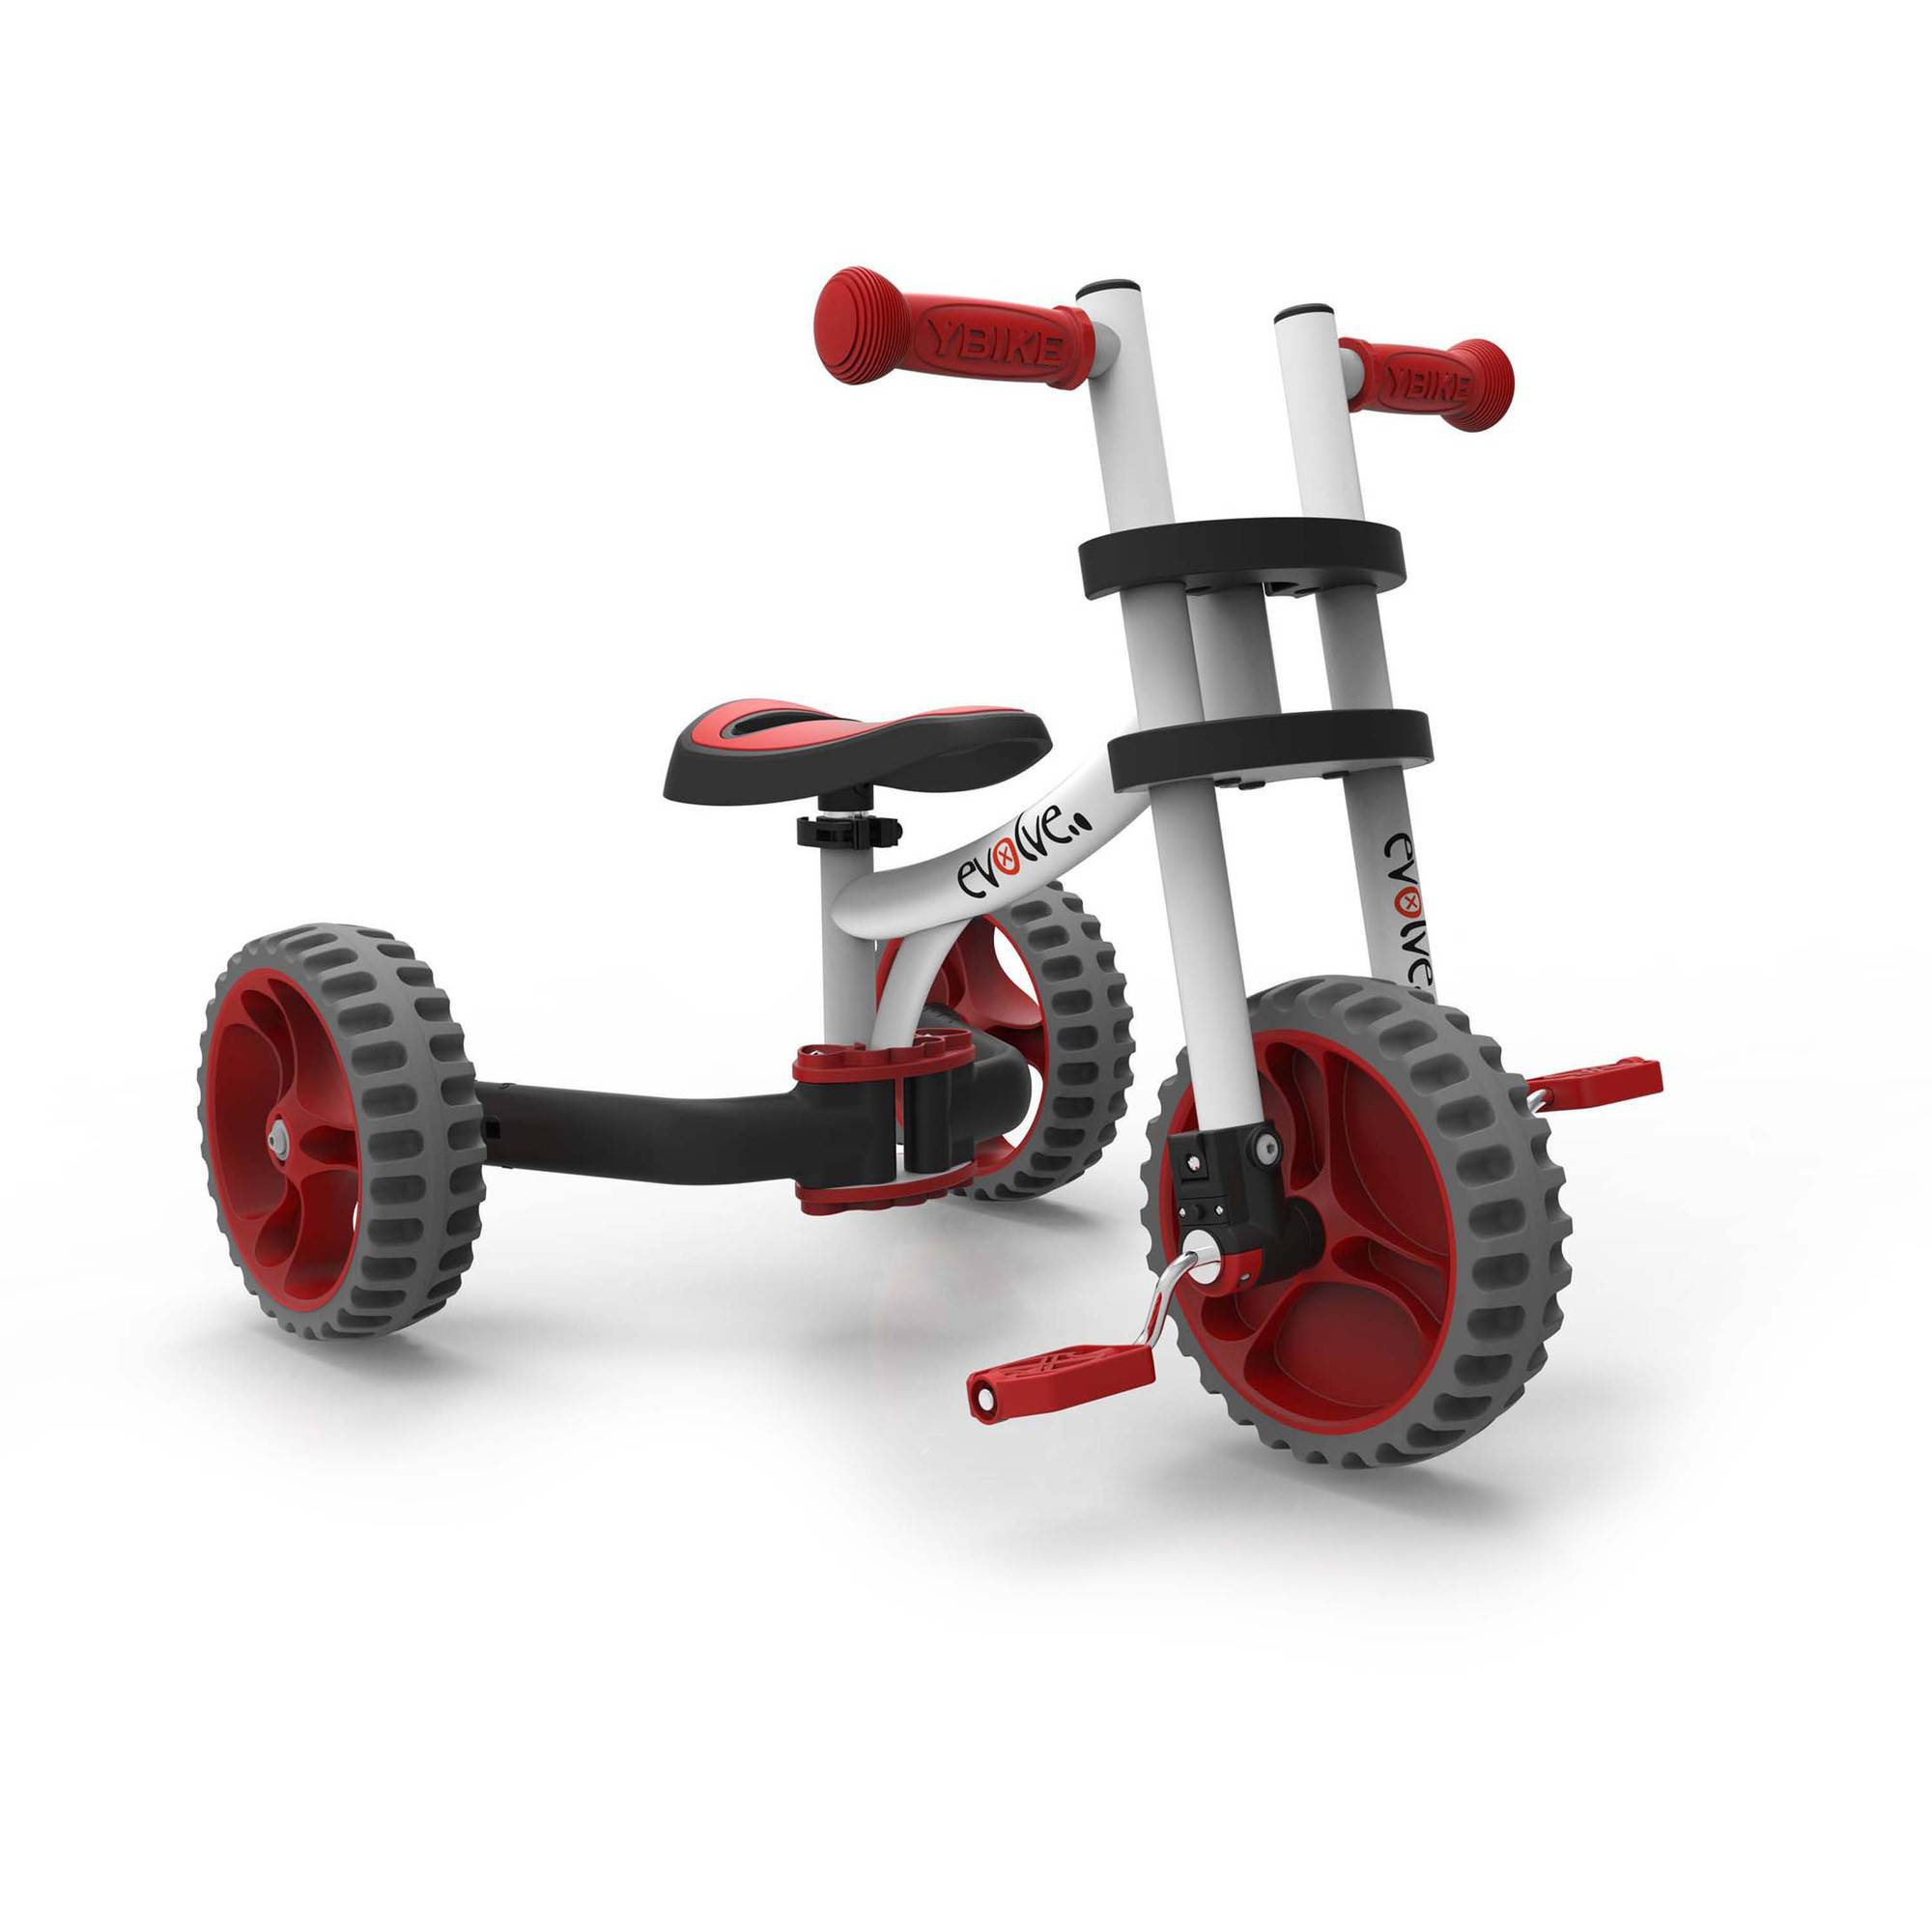 YBIKE Evolve Balance Trike, White/Red